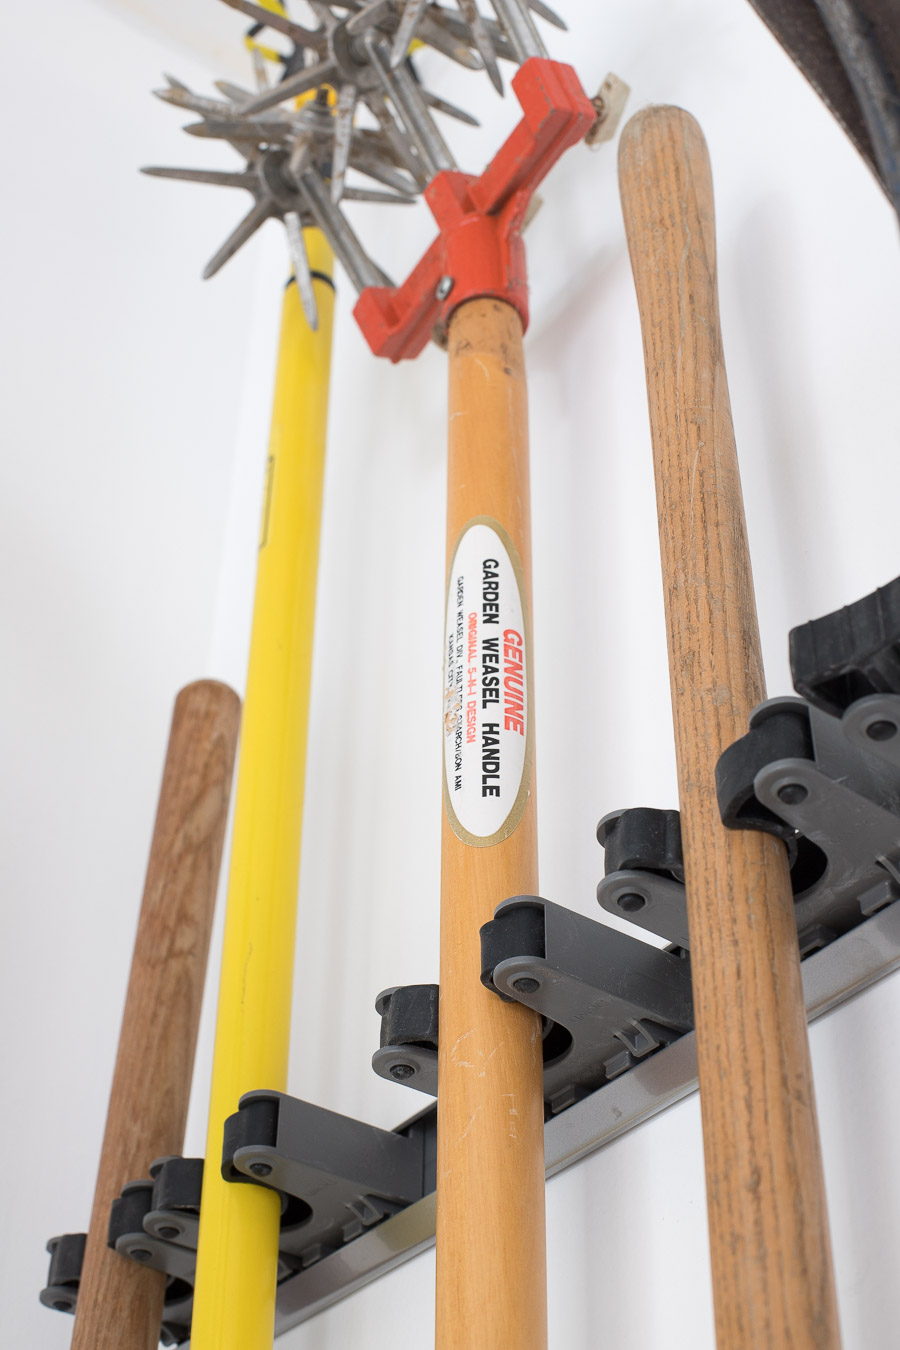 We Also Have A Few Things Hung By Simple Accessory Hooks And Others Like The Rakes That Are From This Straight Handled Tool Hook